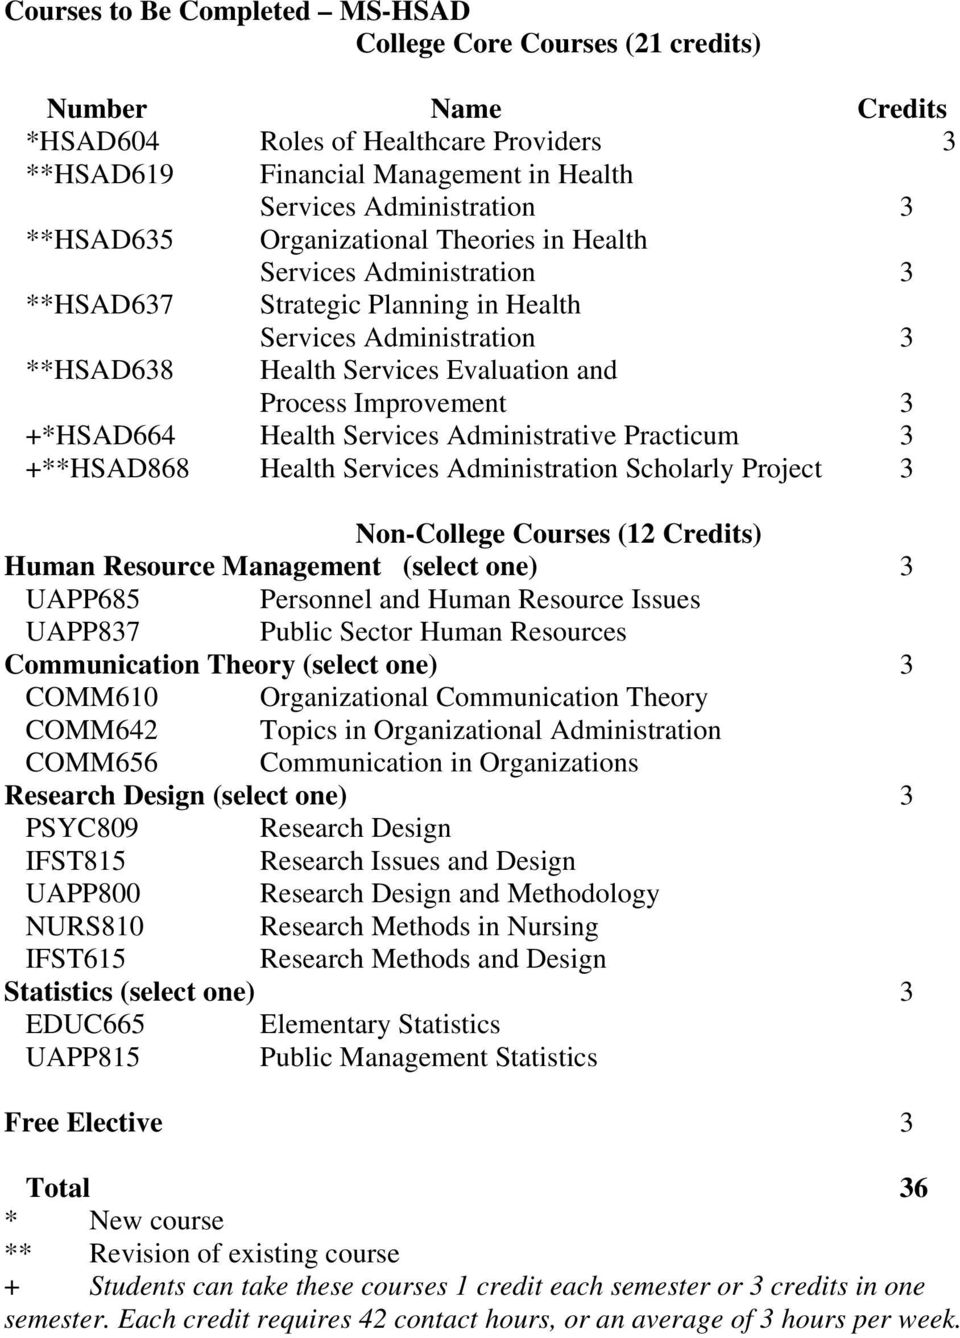 +*HSAD664 Health Services Administrative Practicum 3 +**HSAD868 Health Services Administration Scholarly Project 3 Non-College Courses (12 Credits) Human Resource Management (select one) 3 UAPP685